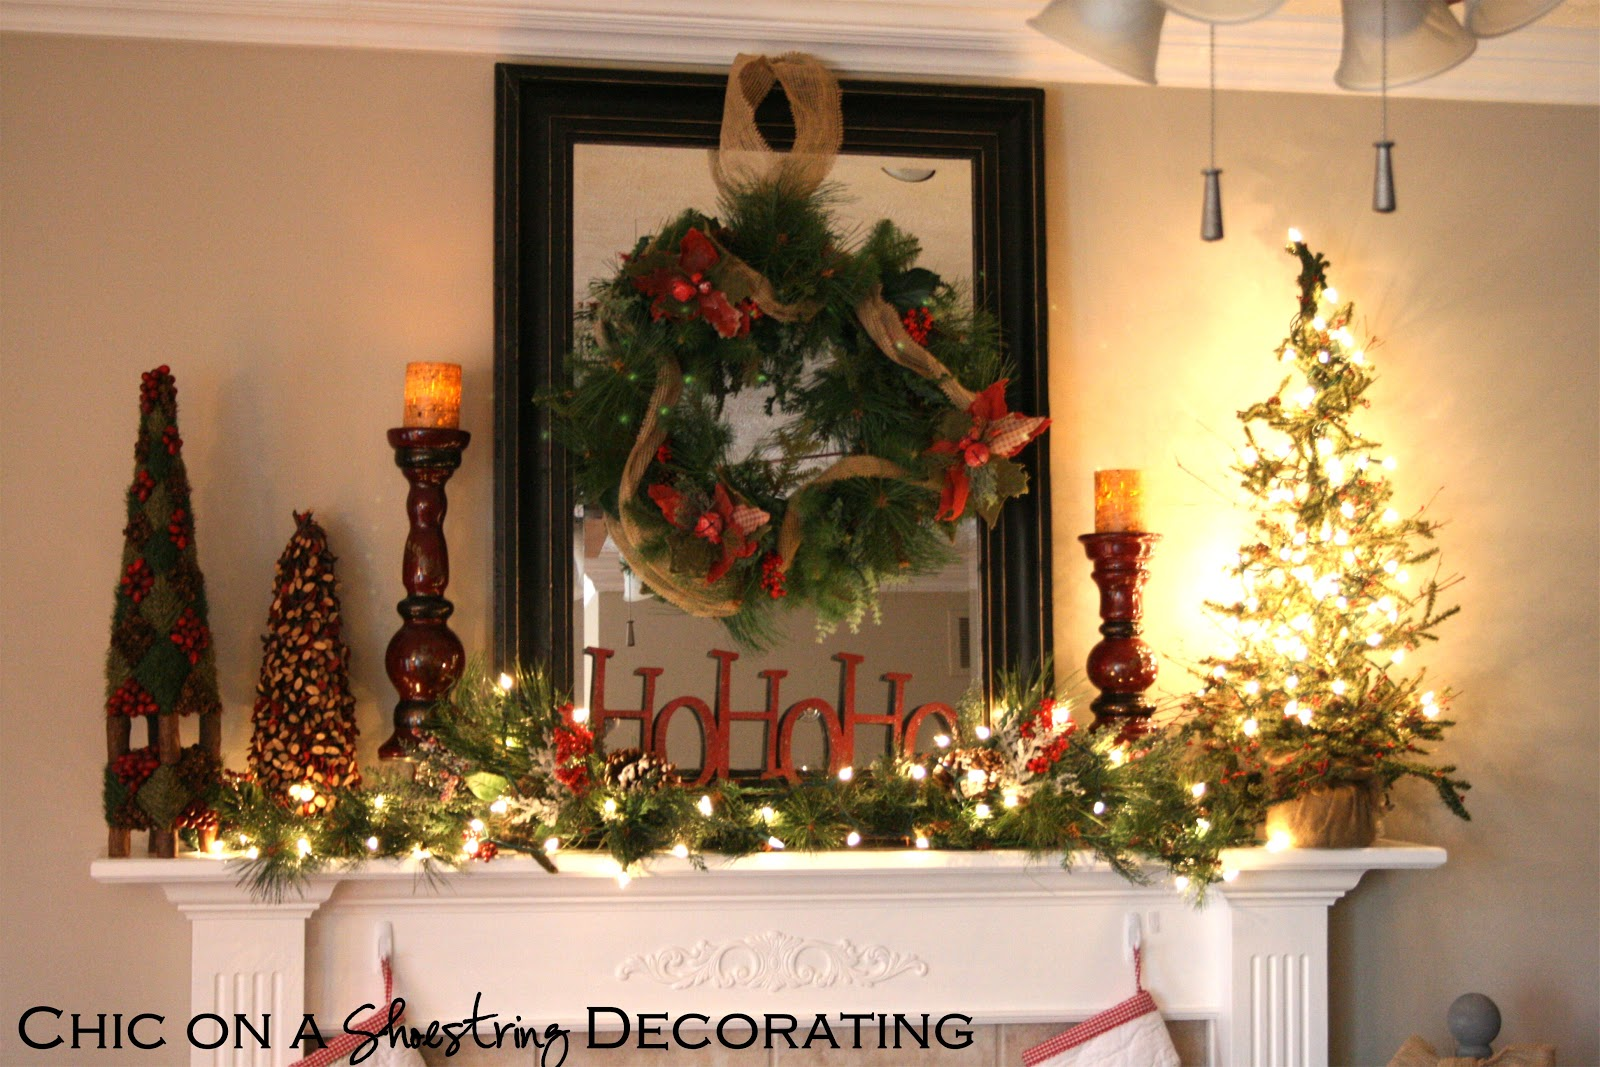 Chic on a shoestring decorating rustic christmas mantel for Ideas for decorating my home for christmas